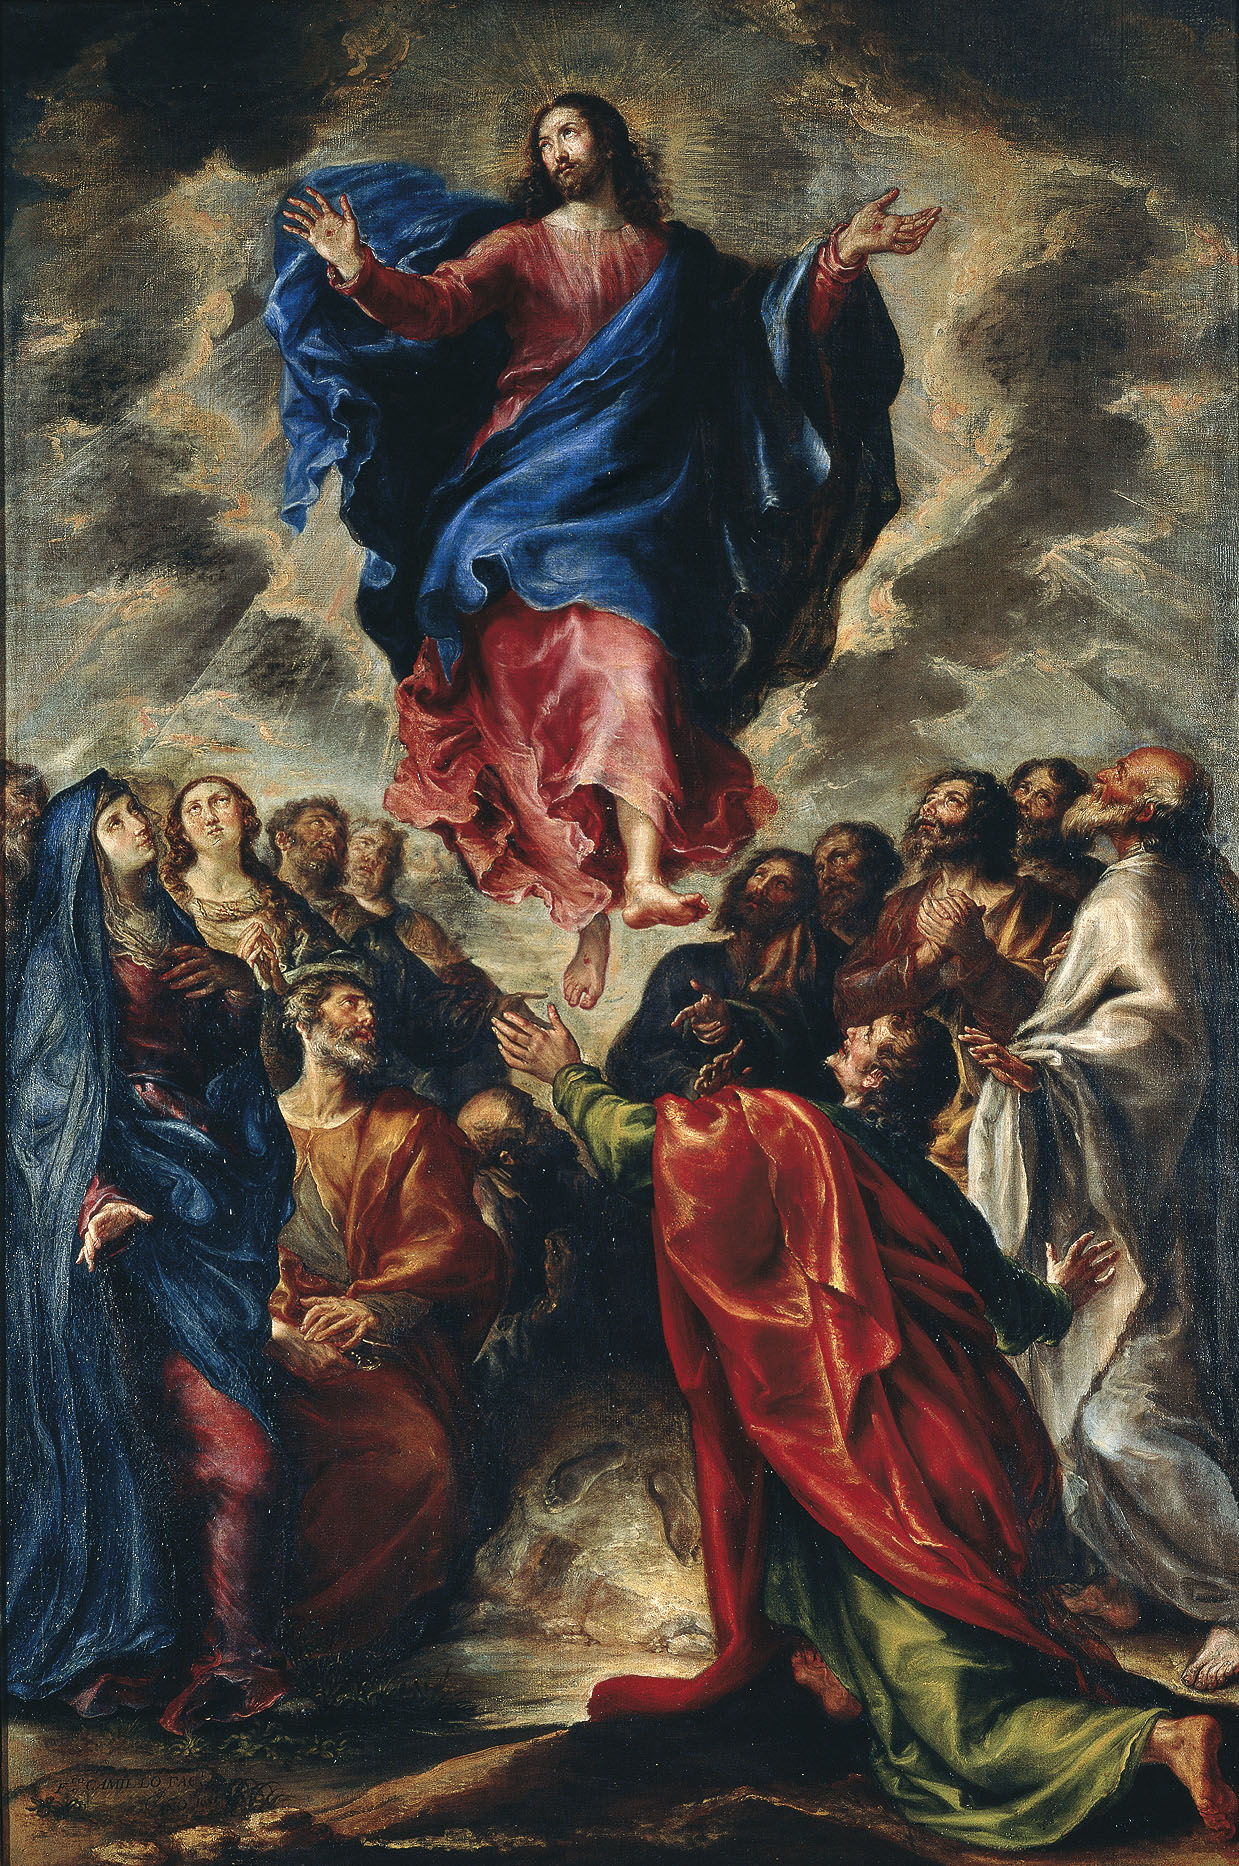 Francisco Camilo, Ascensió, cap a 1651